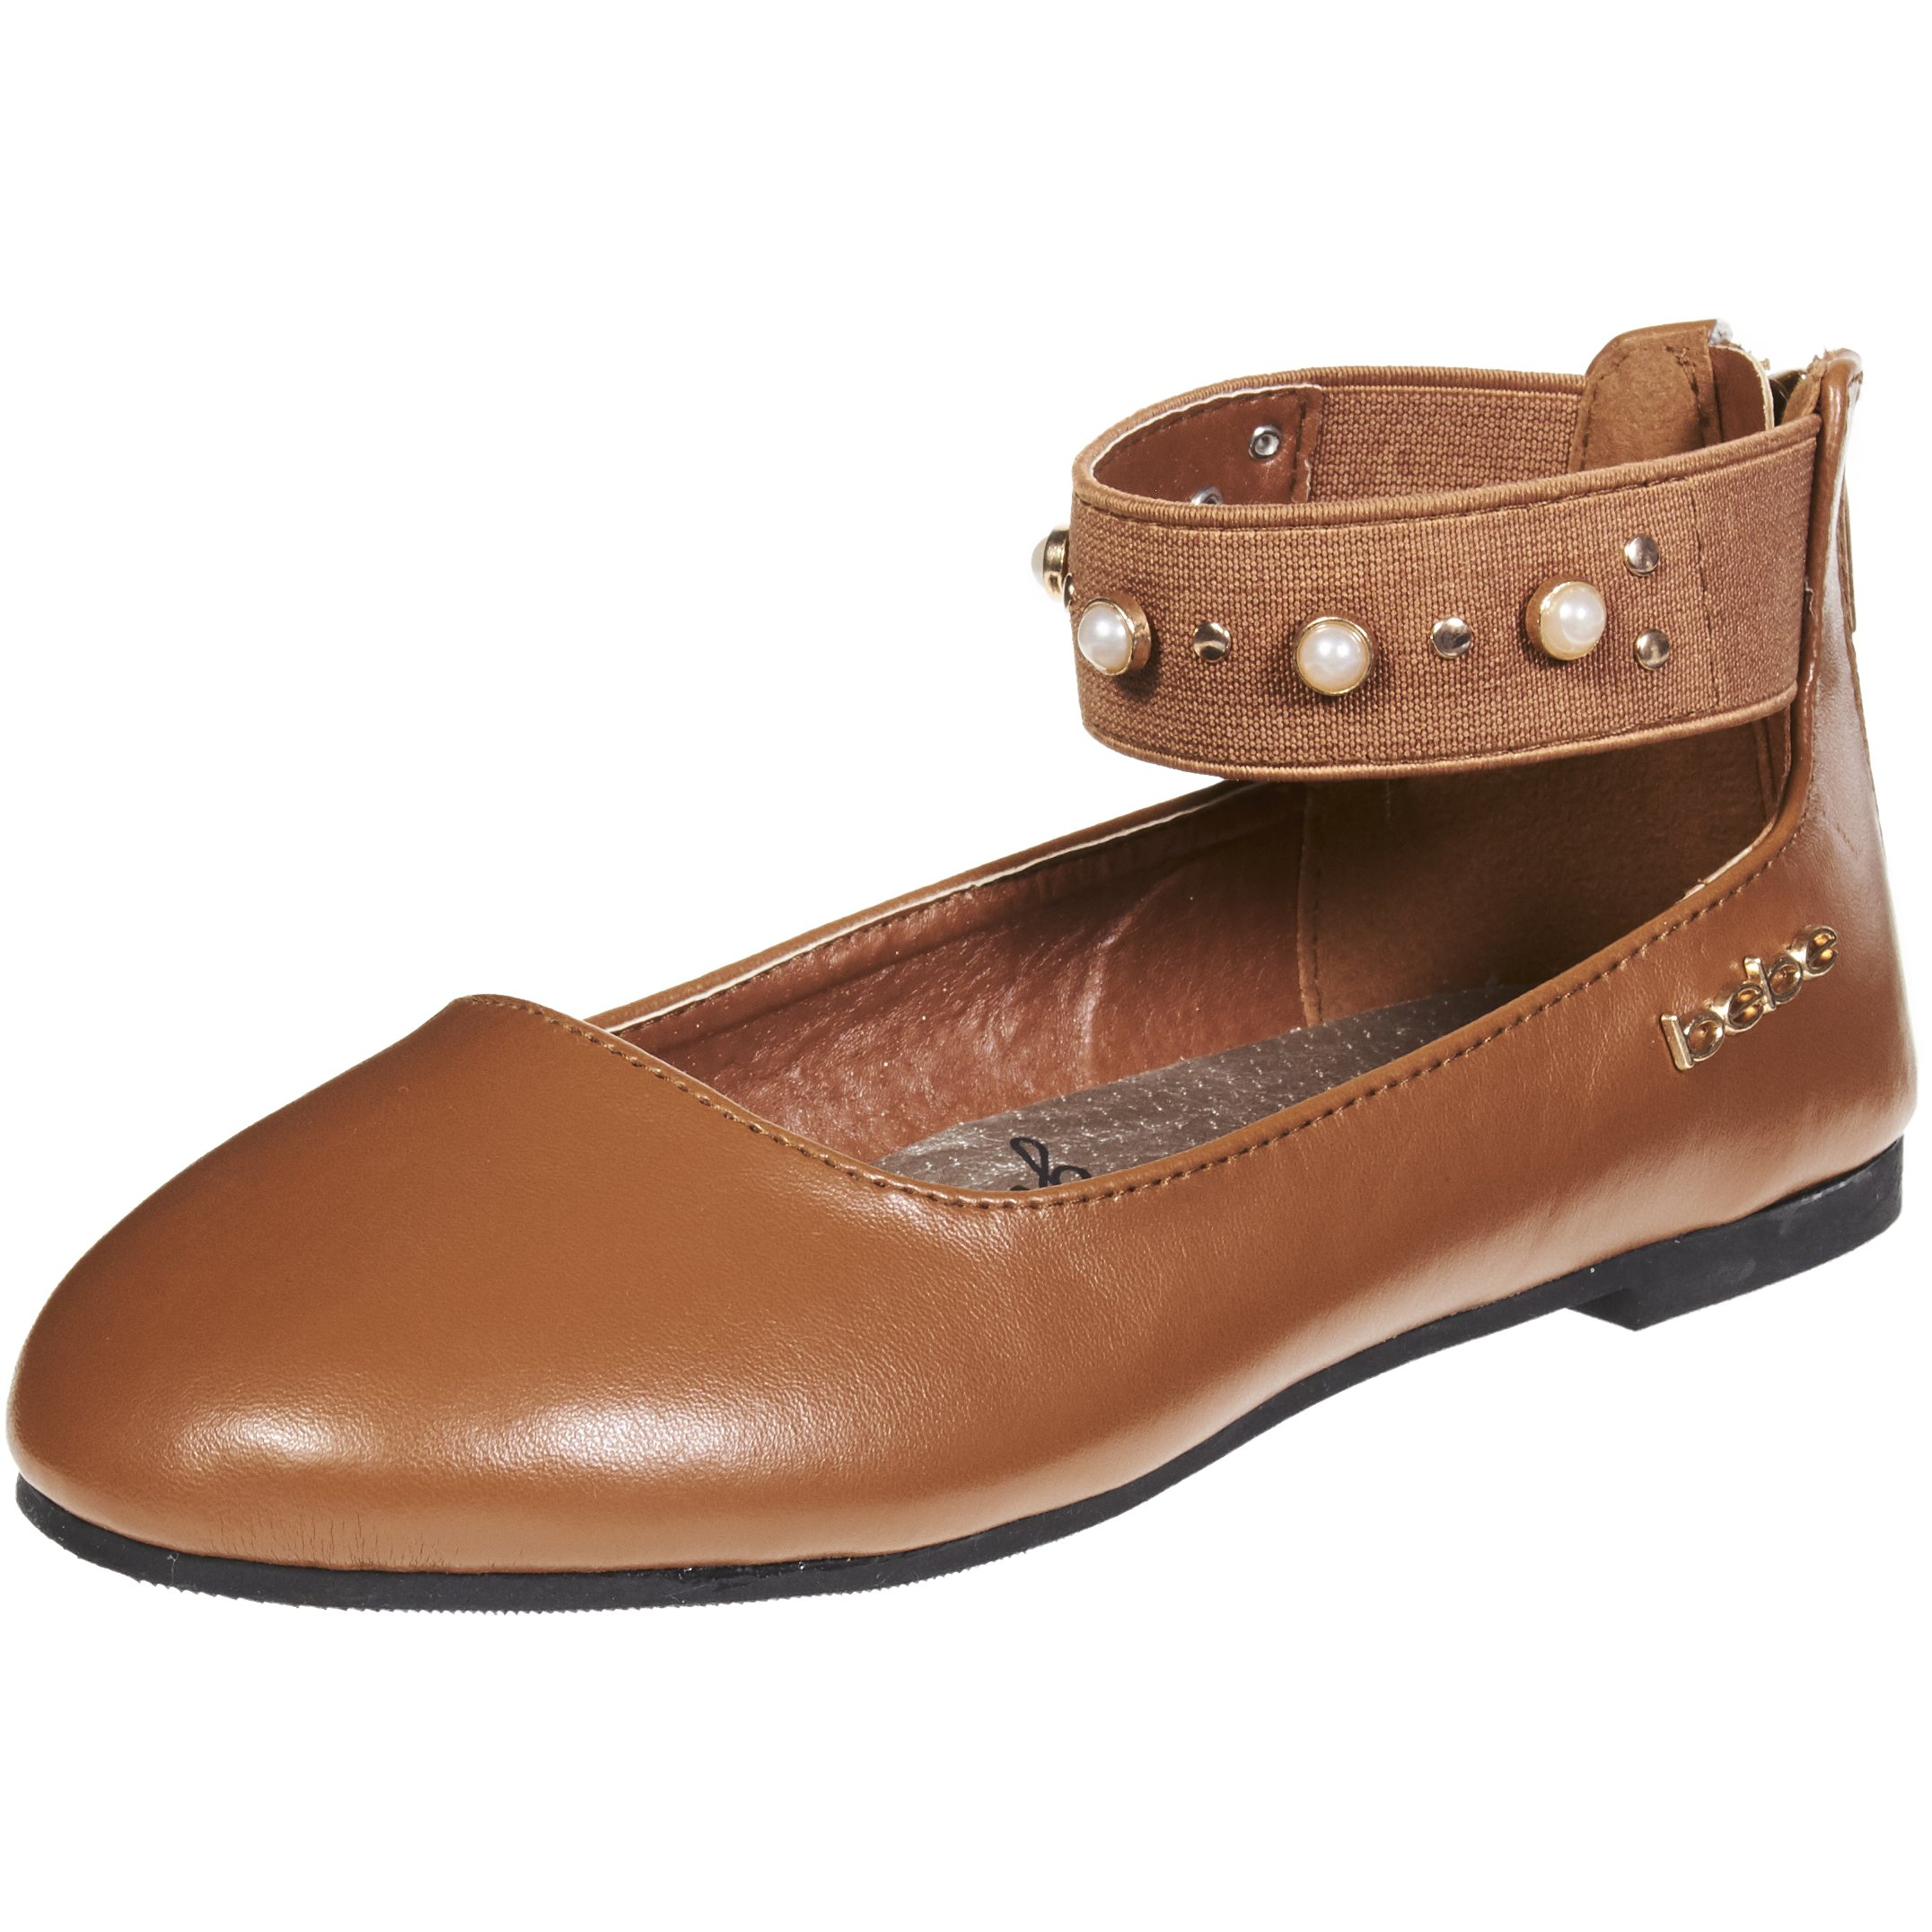 bebe Girls Big Kid Mary Jane Ballerina Ballet Flat Shoes Elastic Ankle Strap with Pearls and Studs 1 Cognac/Gold